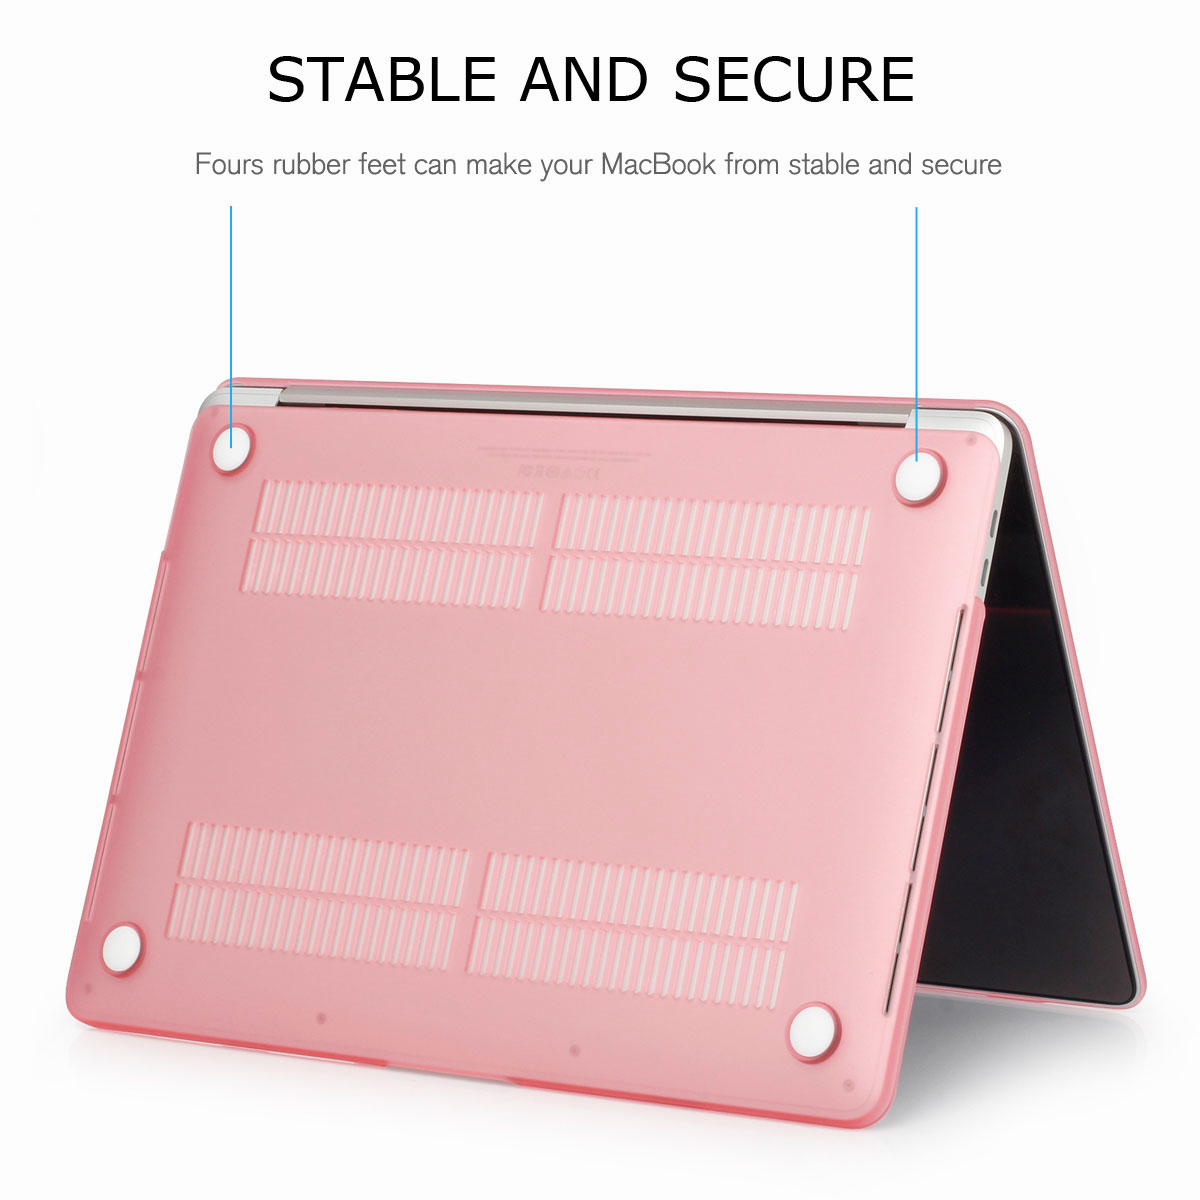 Shockproof-Rubberized-Matte-Hard-Case-Cover-For-Macbook-13-034-15-034-Inch-A1286-A1278 thumbnail 41